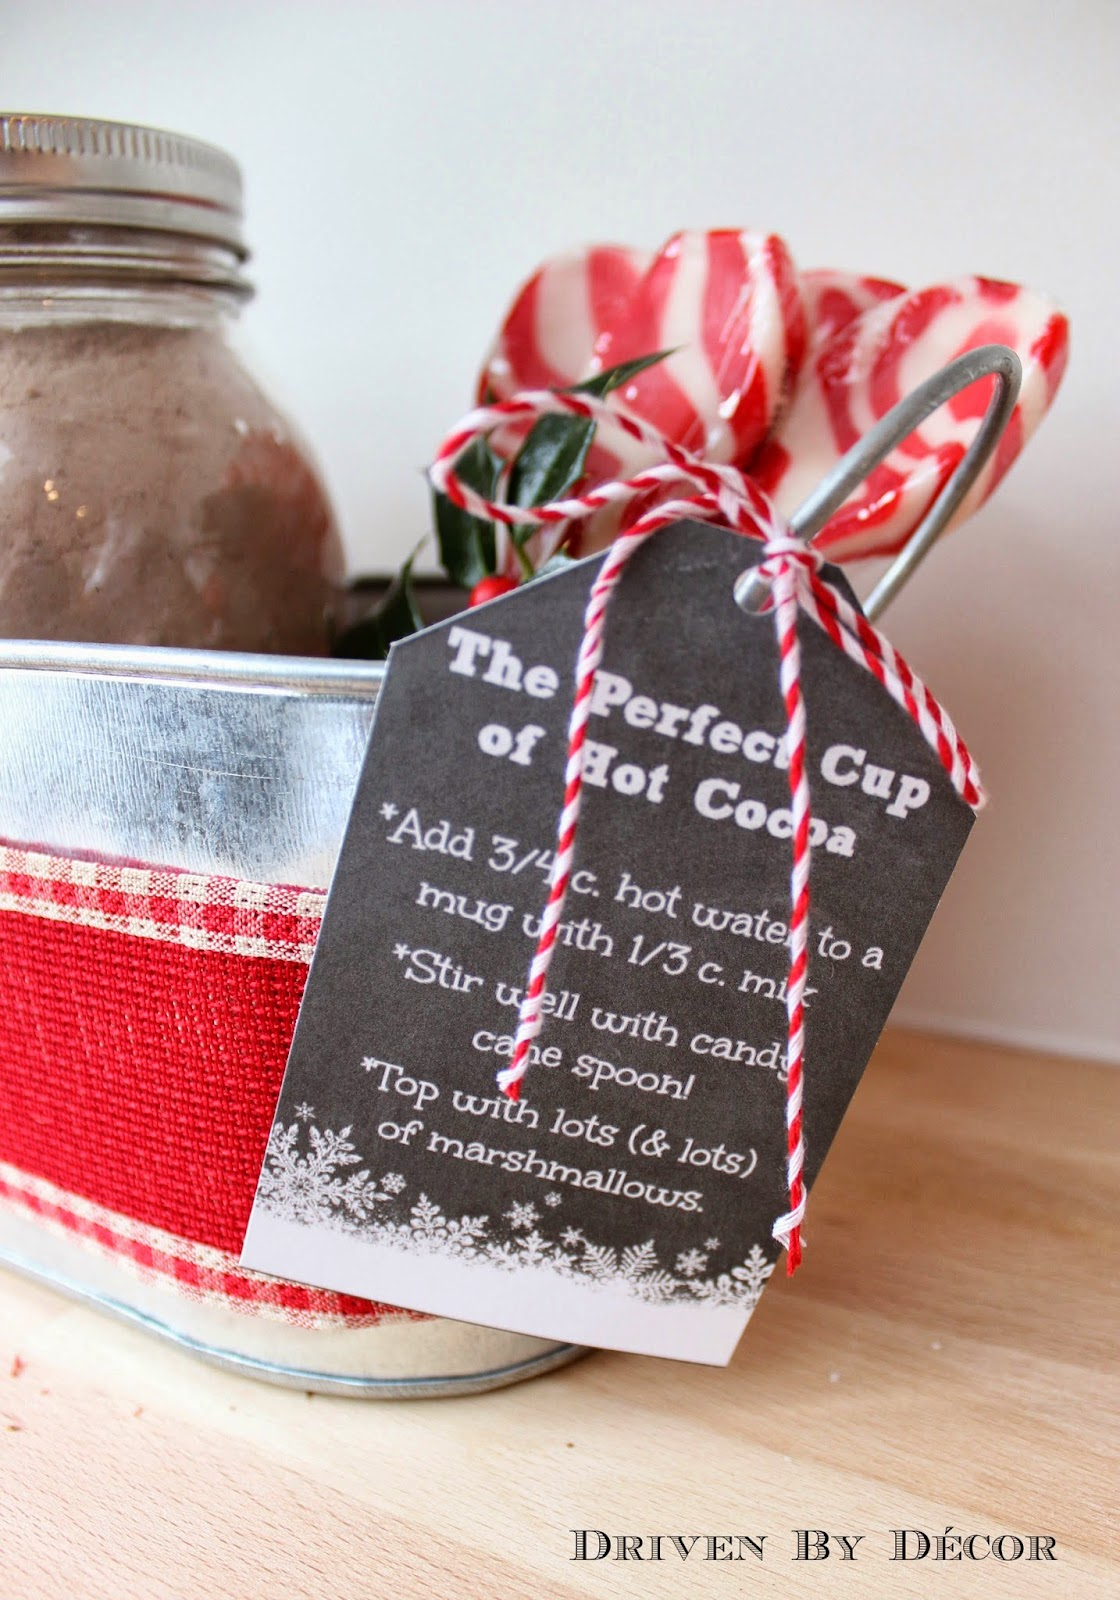 Recipes For Homemade Marshmallows Amp Hot Chocolate Driven